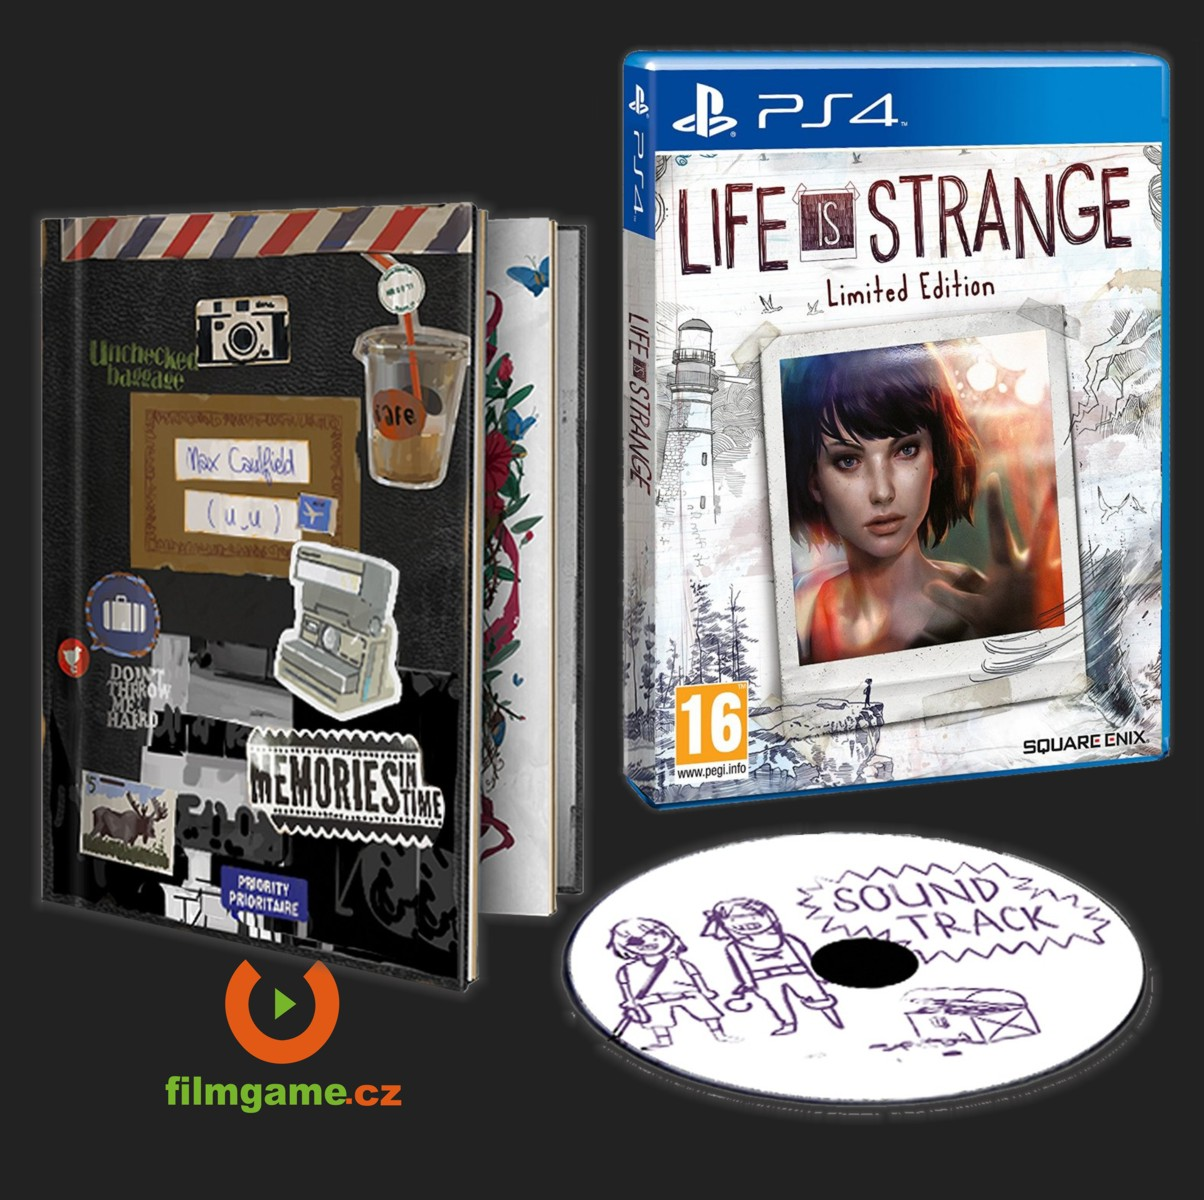 LIFE IS STRANGE LIMITED EDITION - PS4